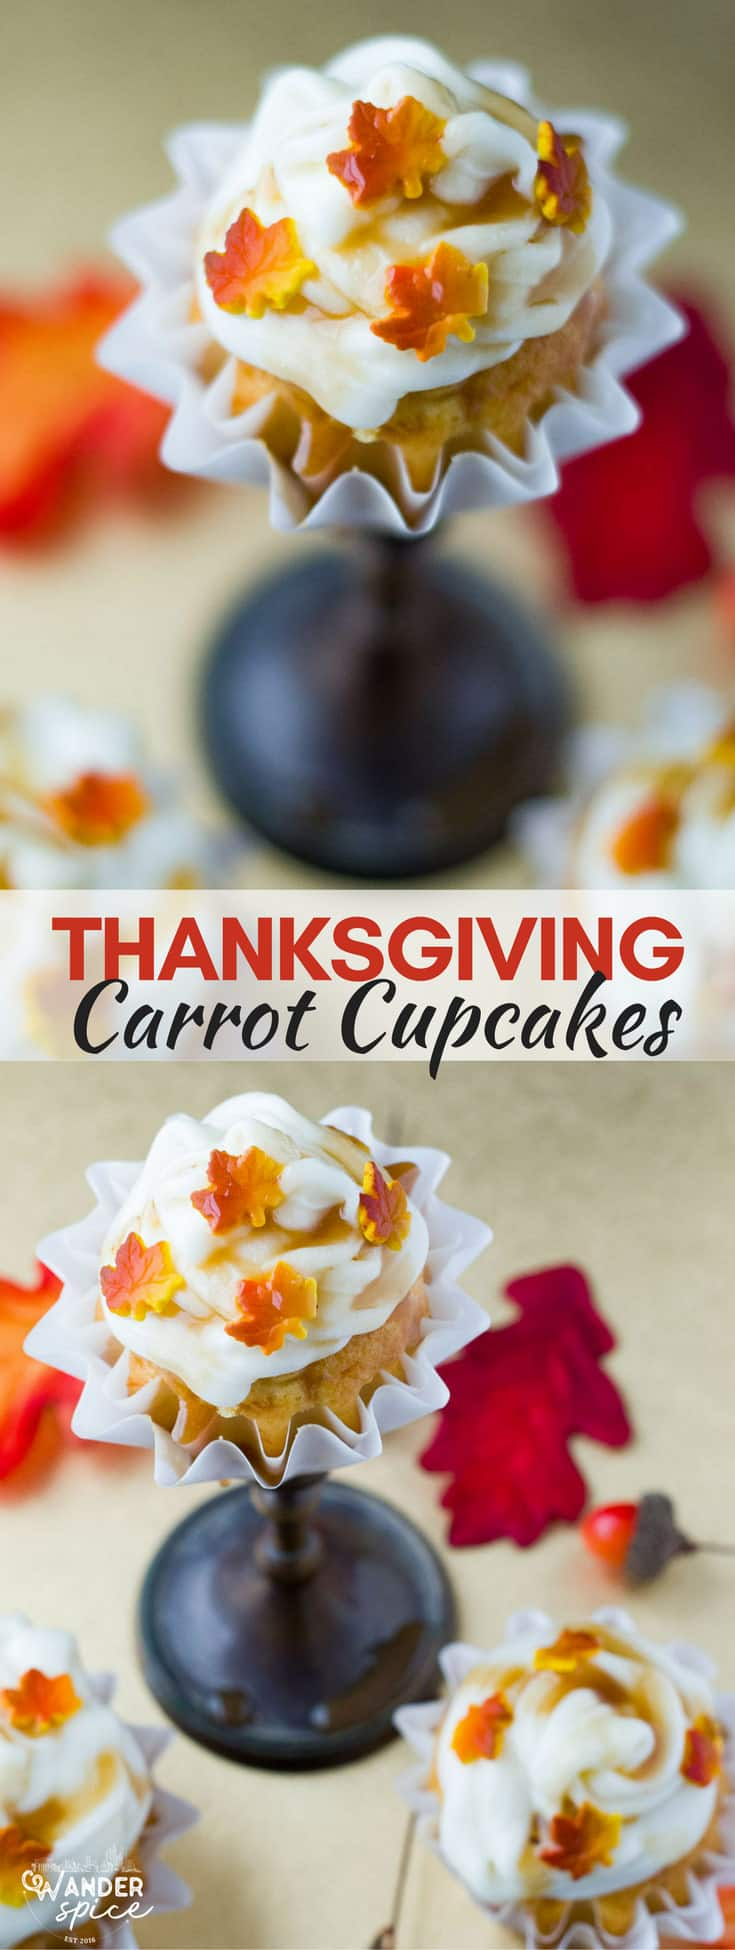 Easy and so cute Thanksgiving Cupcakes recipe. Carrot cake base with a light frosting and caramel drip. #cupcakes